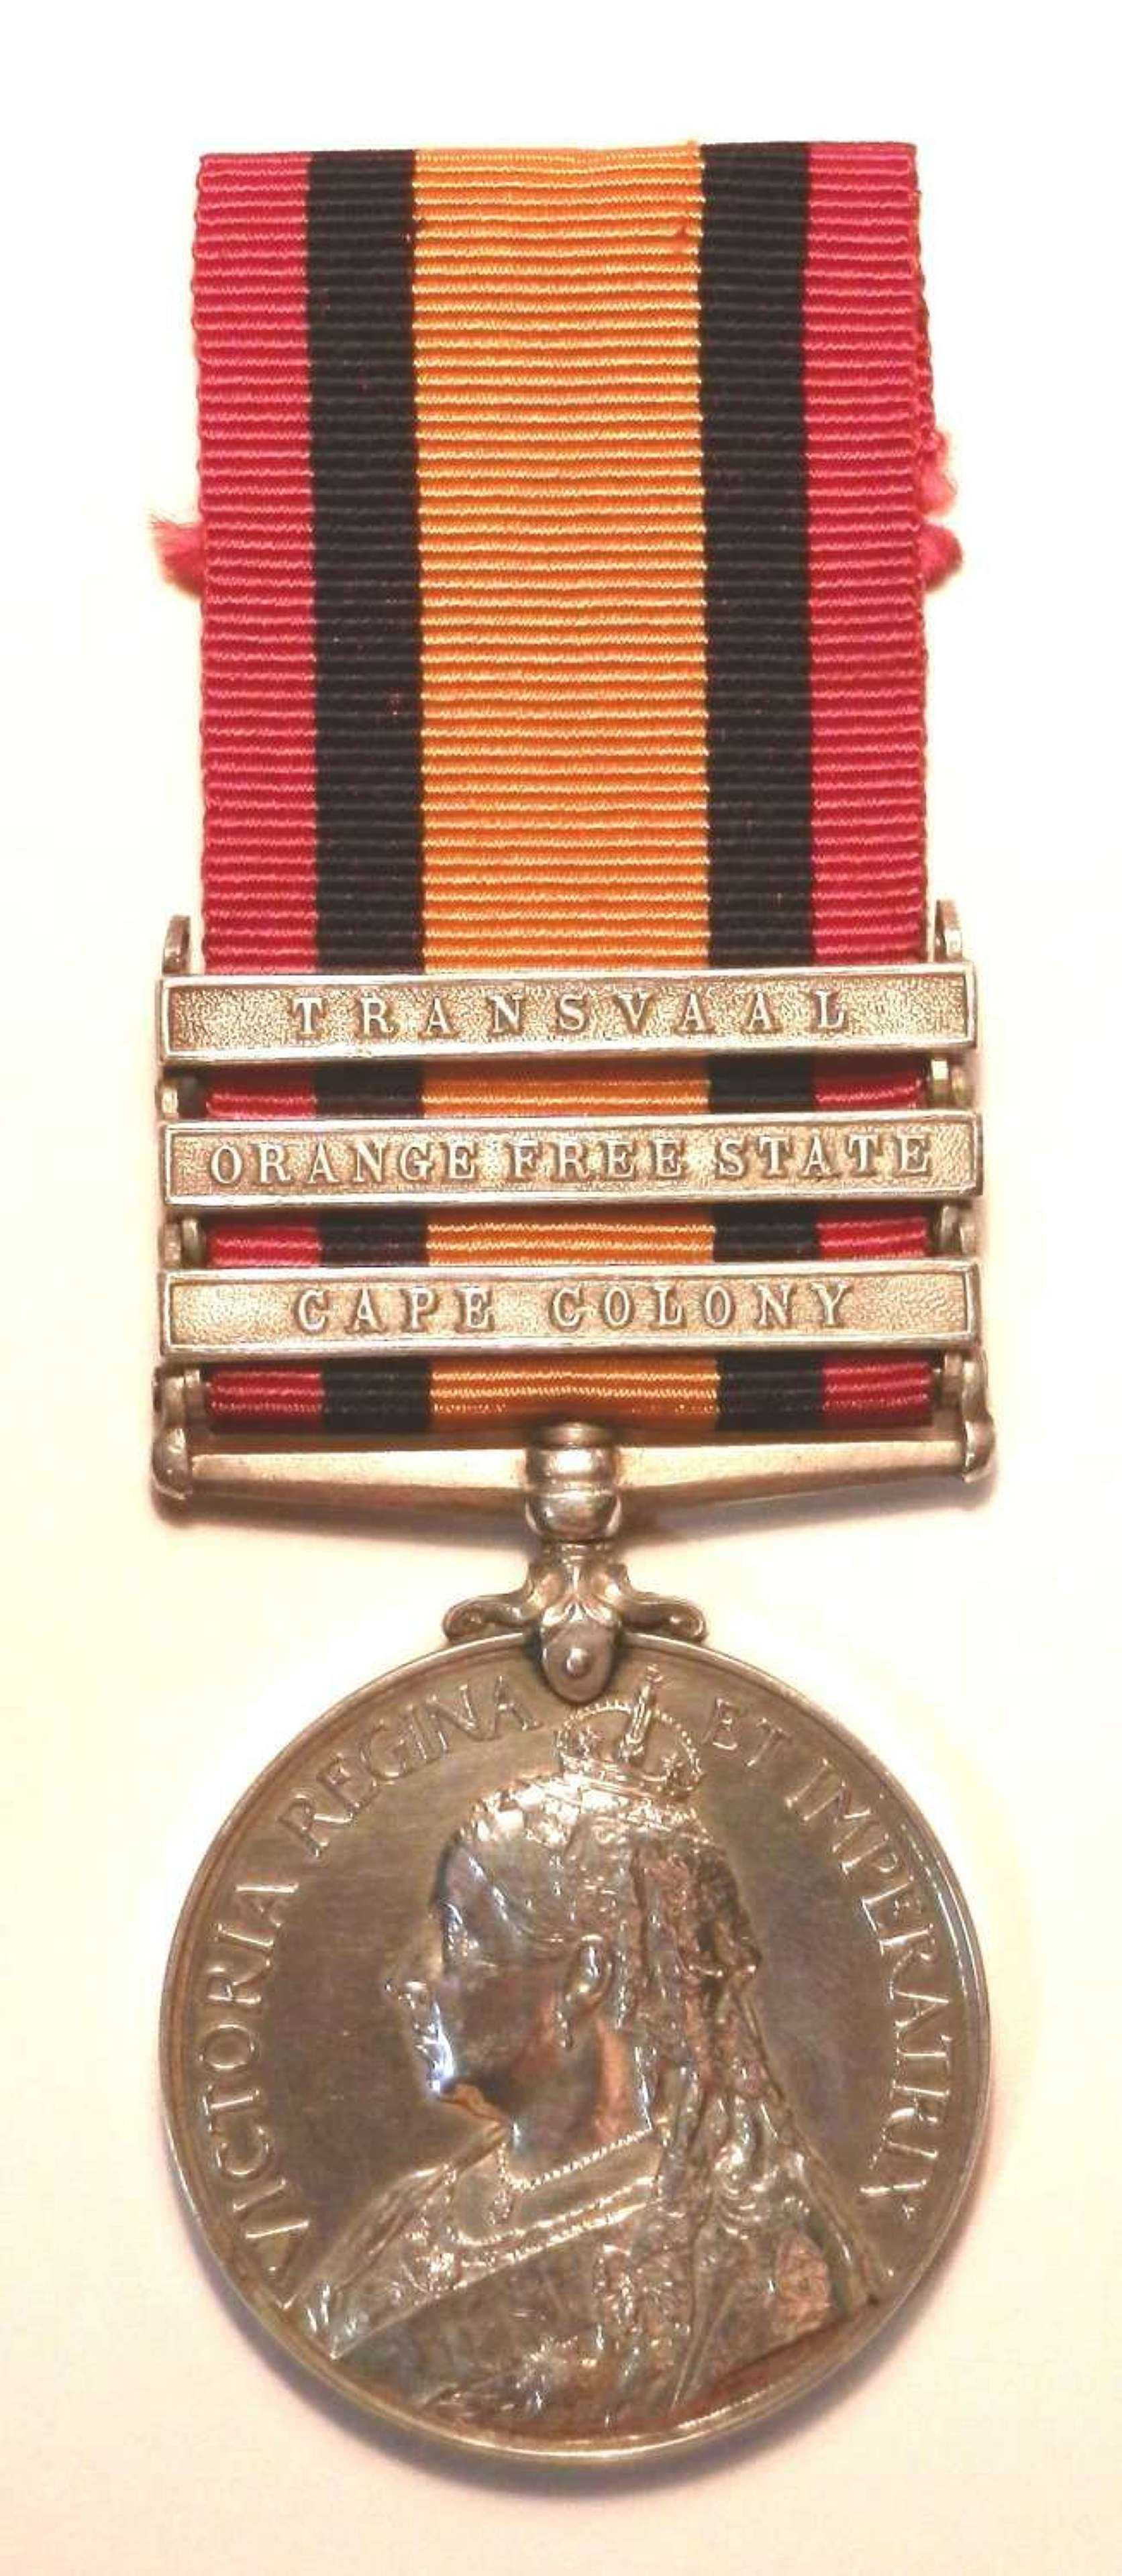 Queen South Africa. Pte Thomas Gelson, 2/Bn, Northumberland Fusiliers